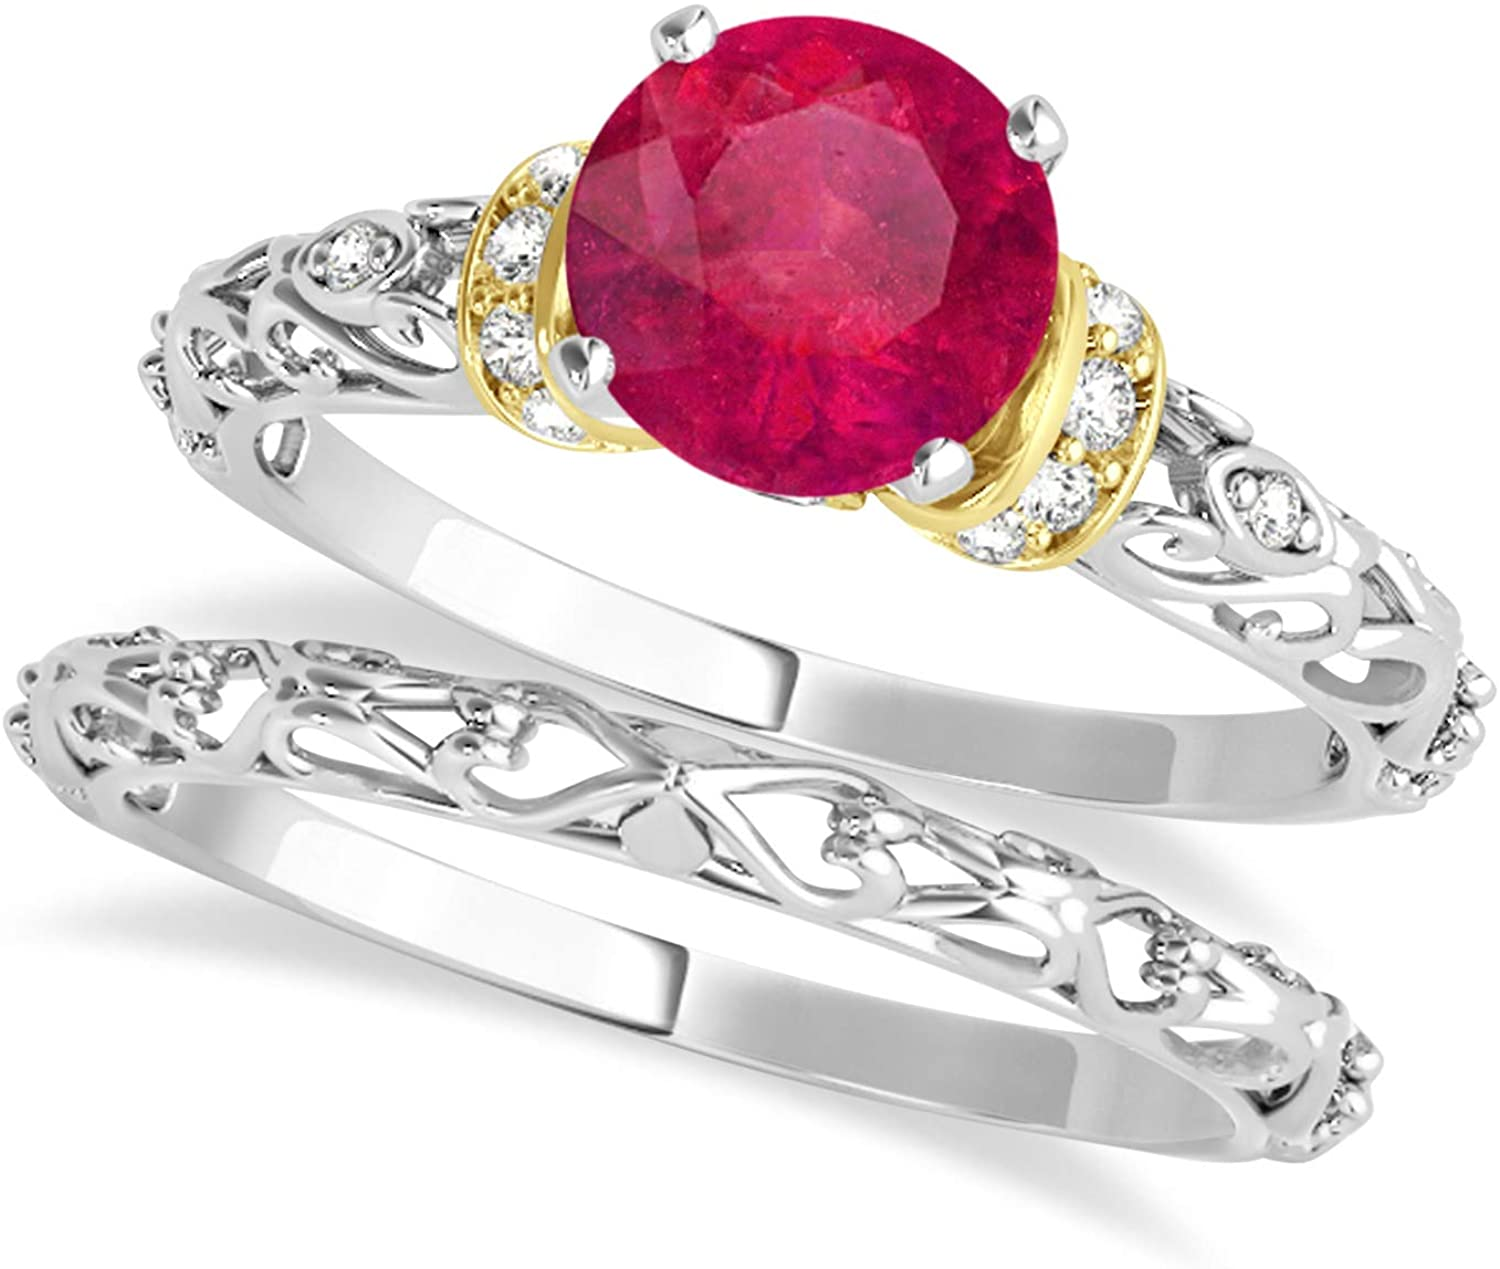 (0.87ct) 18k Two-Tone Gold Ruby and Diamond Antique-Style Bridal Set